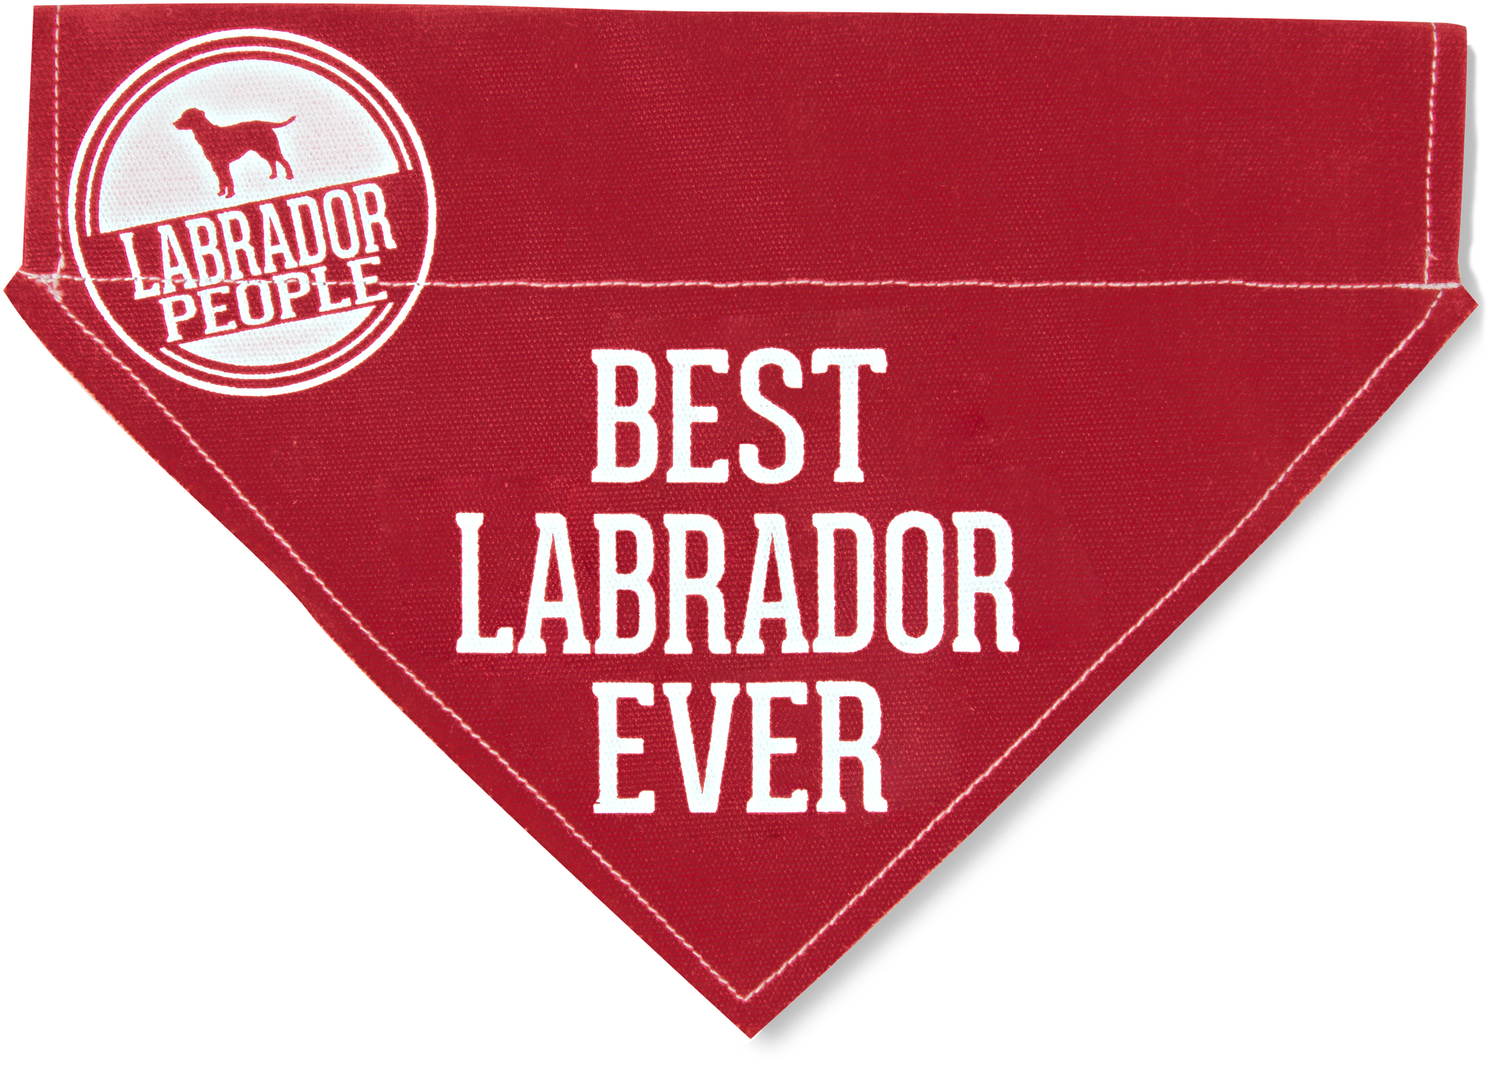 "Best Labrador by We Pets - Best Labrador - 12"" x 8"" Canvas Slip on Pet Bandana"